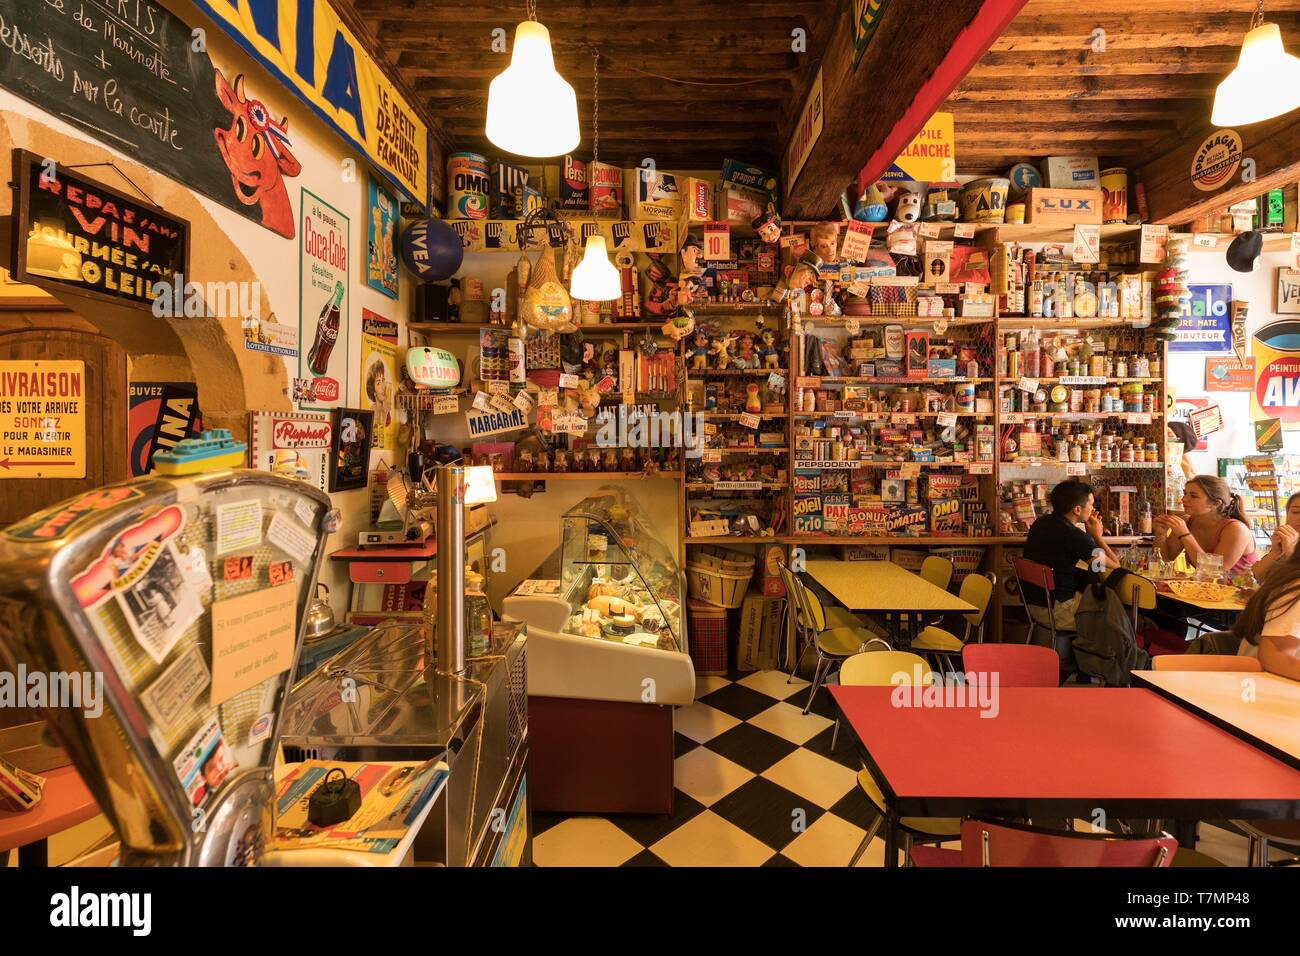 France, Rhone, Lyon, 5th district, Old Lyon district, historic site listed as World Heritage by UNESCO, rue Saint Georges, Bistrot La Limonade Marinette - Stock Image